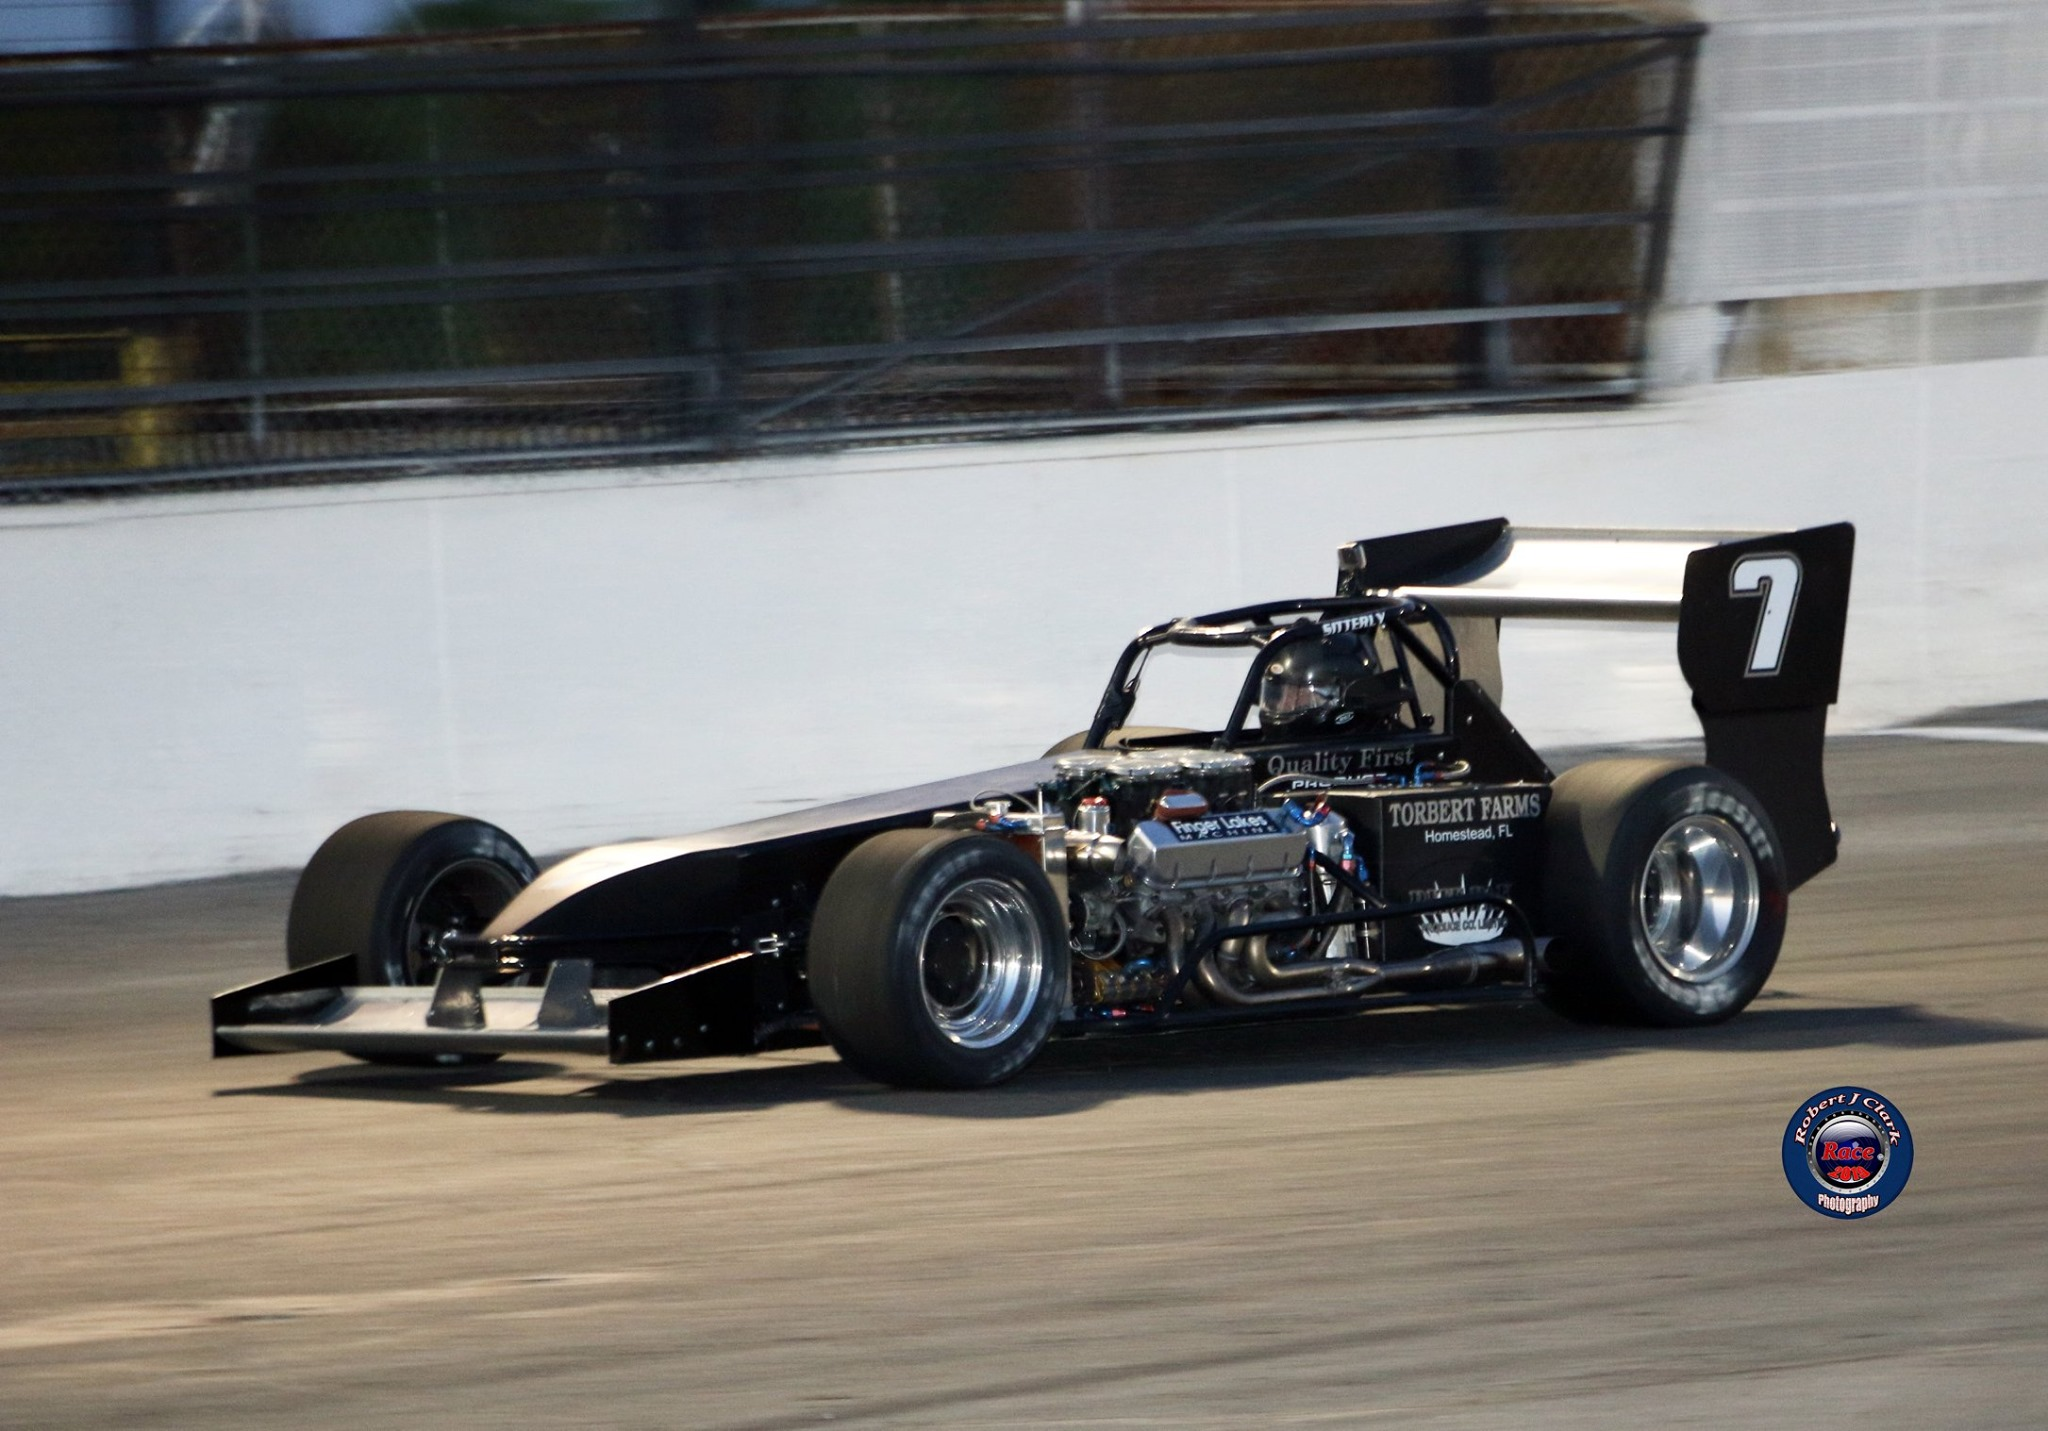 Otto Sitterly in action Saturday, June 8 at Oswego Speedway (Robert J Clark photo)